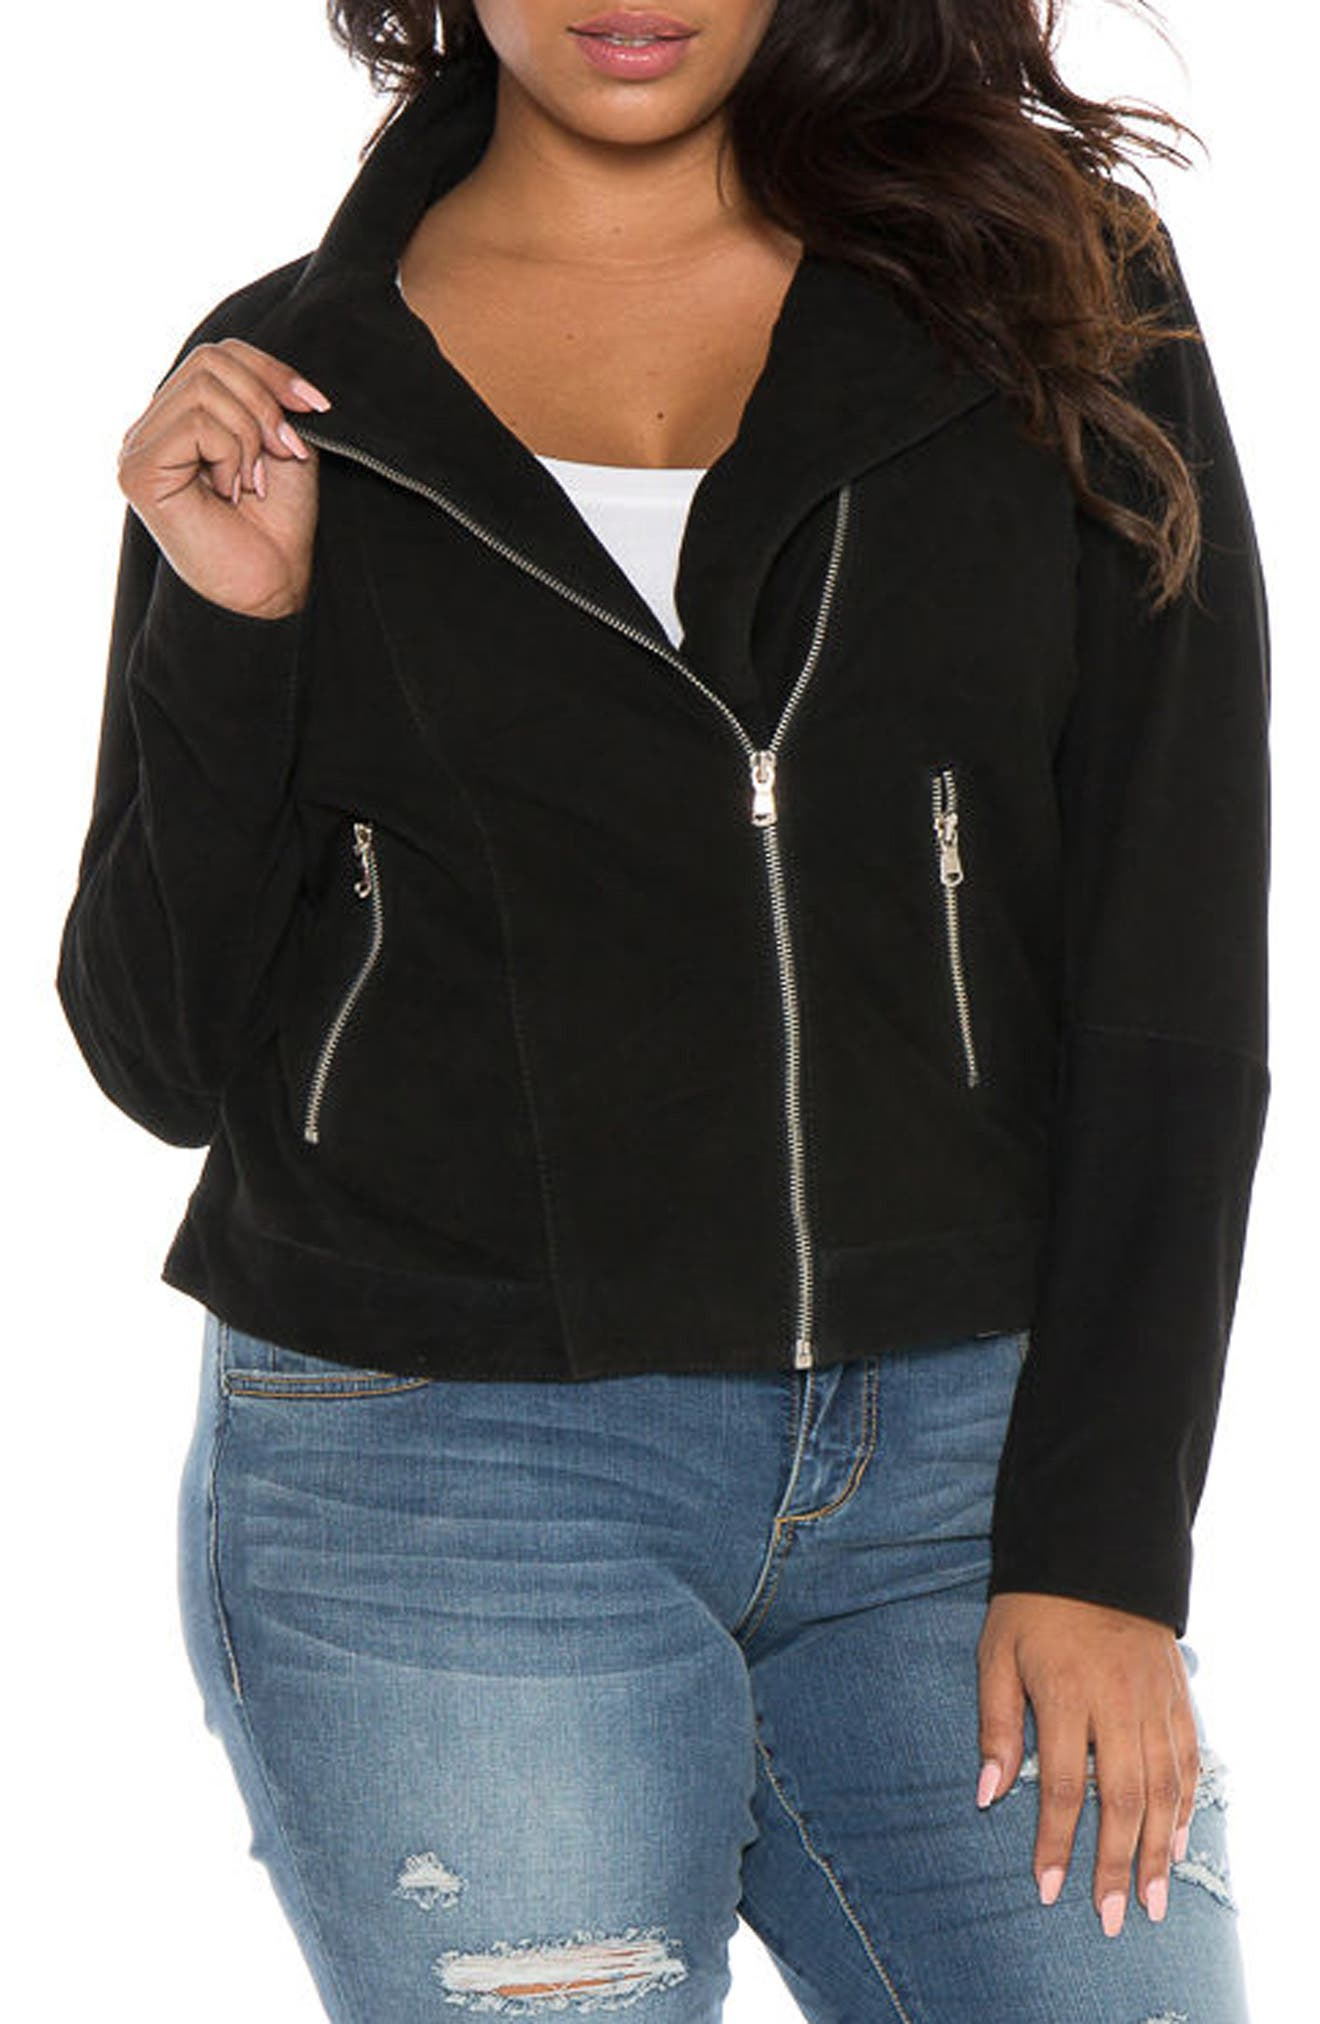 Alternate Image 1 Selected - SLINK Jeans Canyon Suede Jacket (Plus Size)